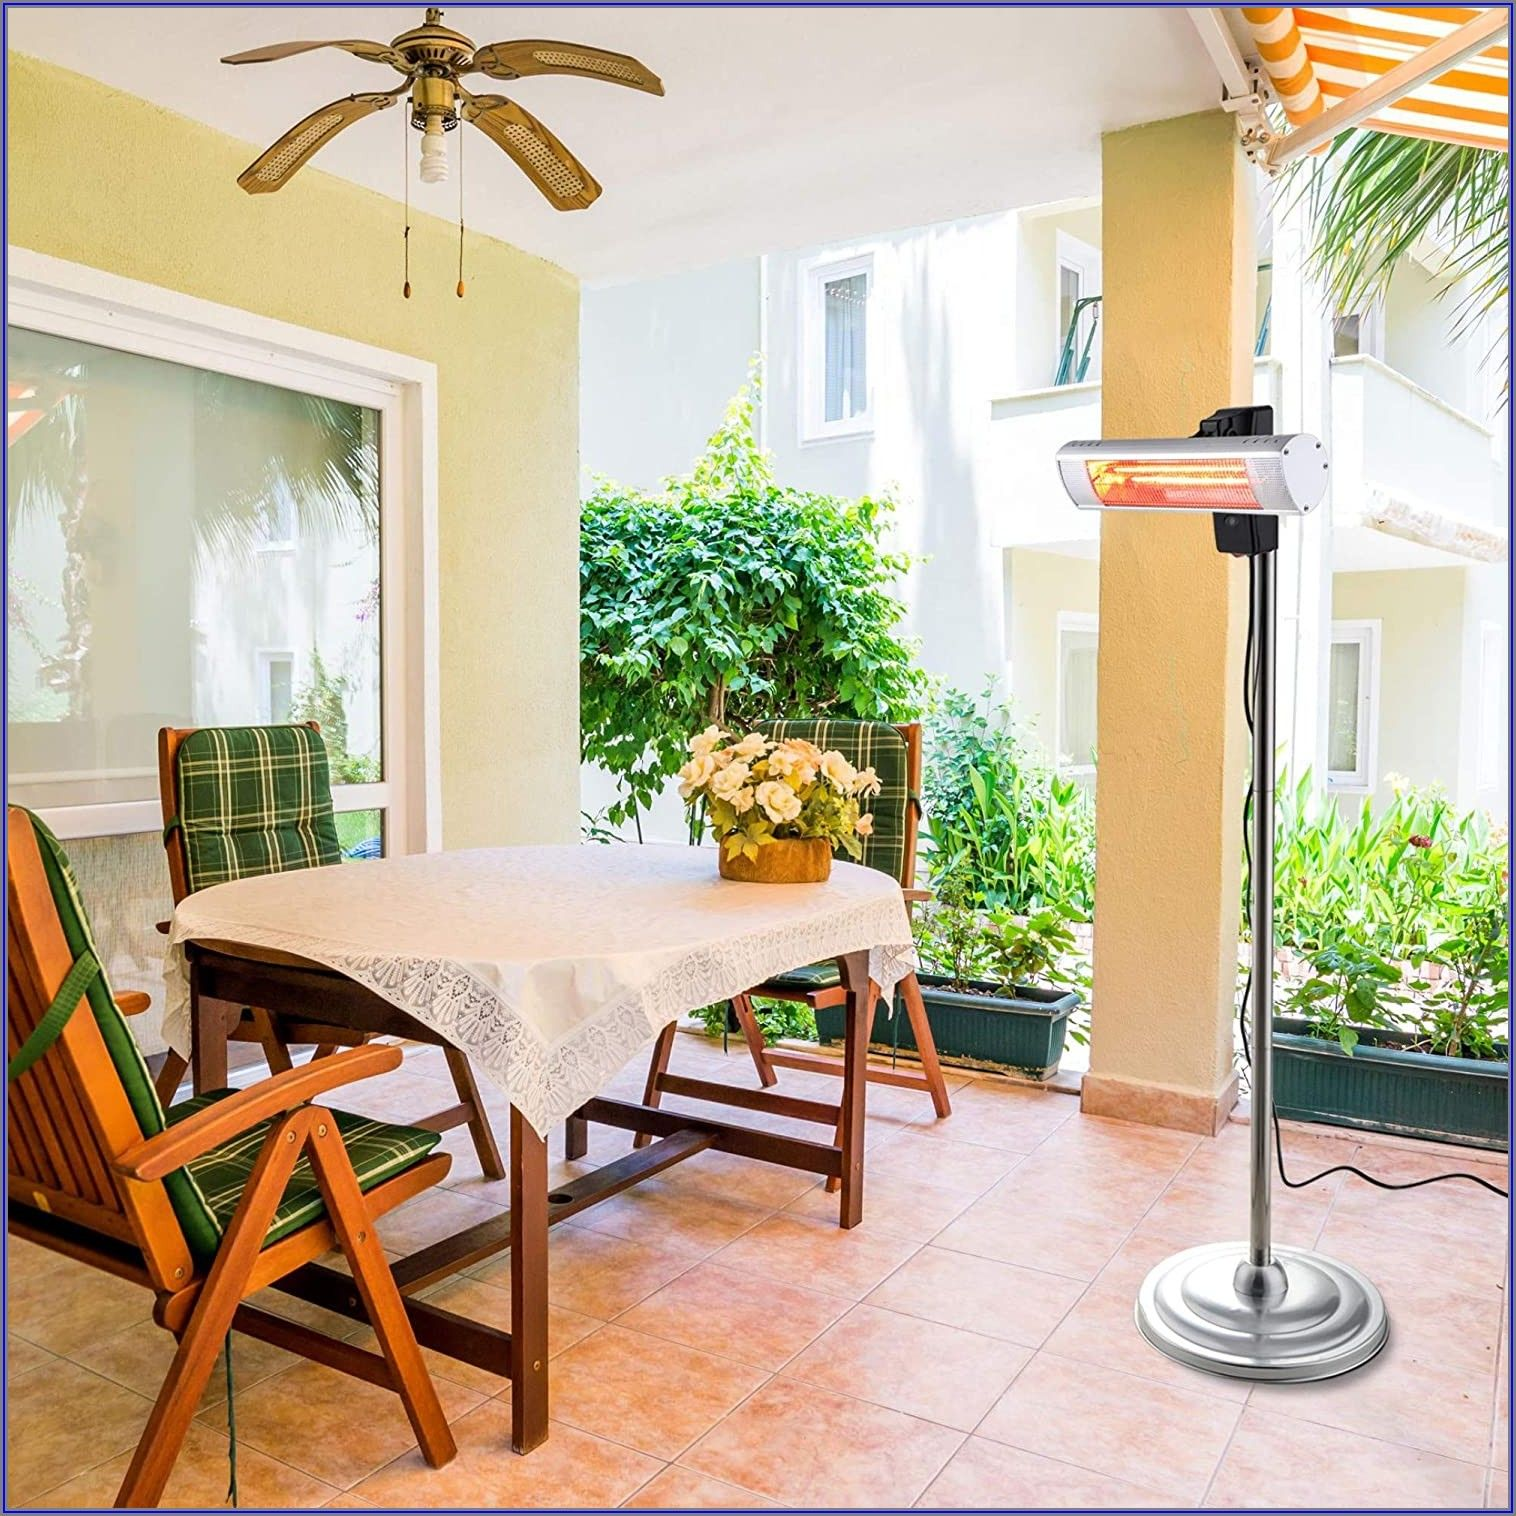 Best Patio Heaters 2019